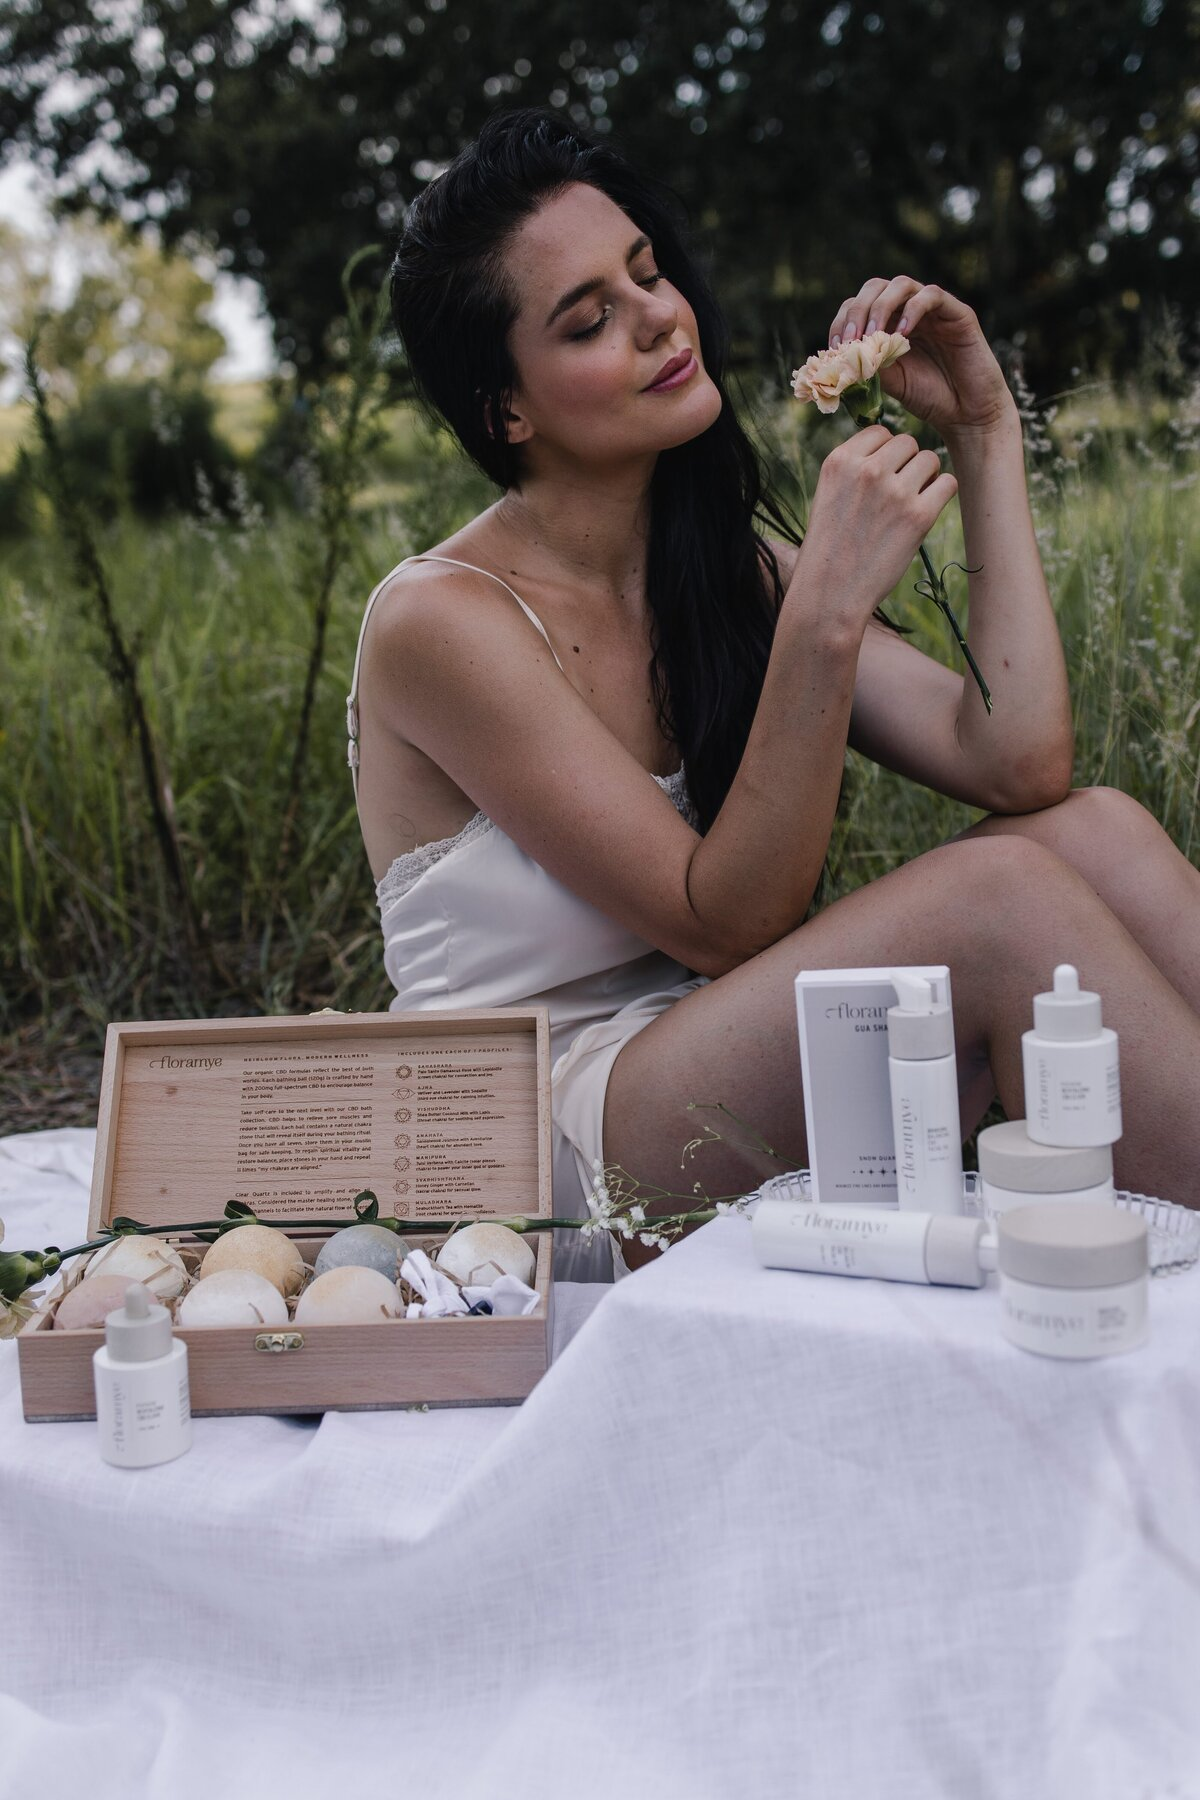 Product Photography for clean beauty brand Floramye at Lake Luisa by Creative Director Alex Perry